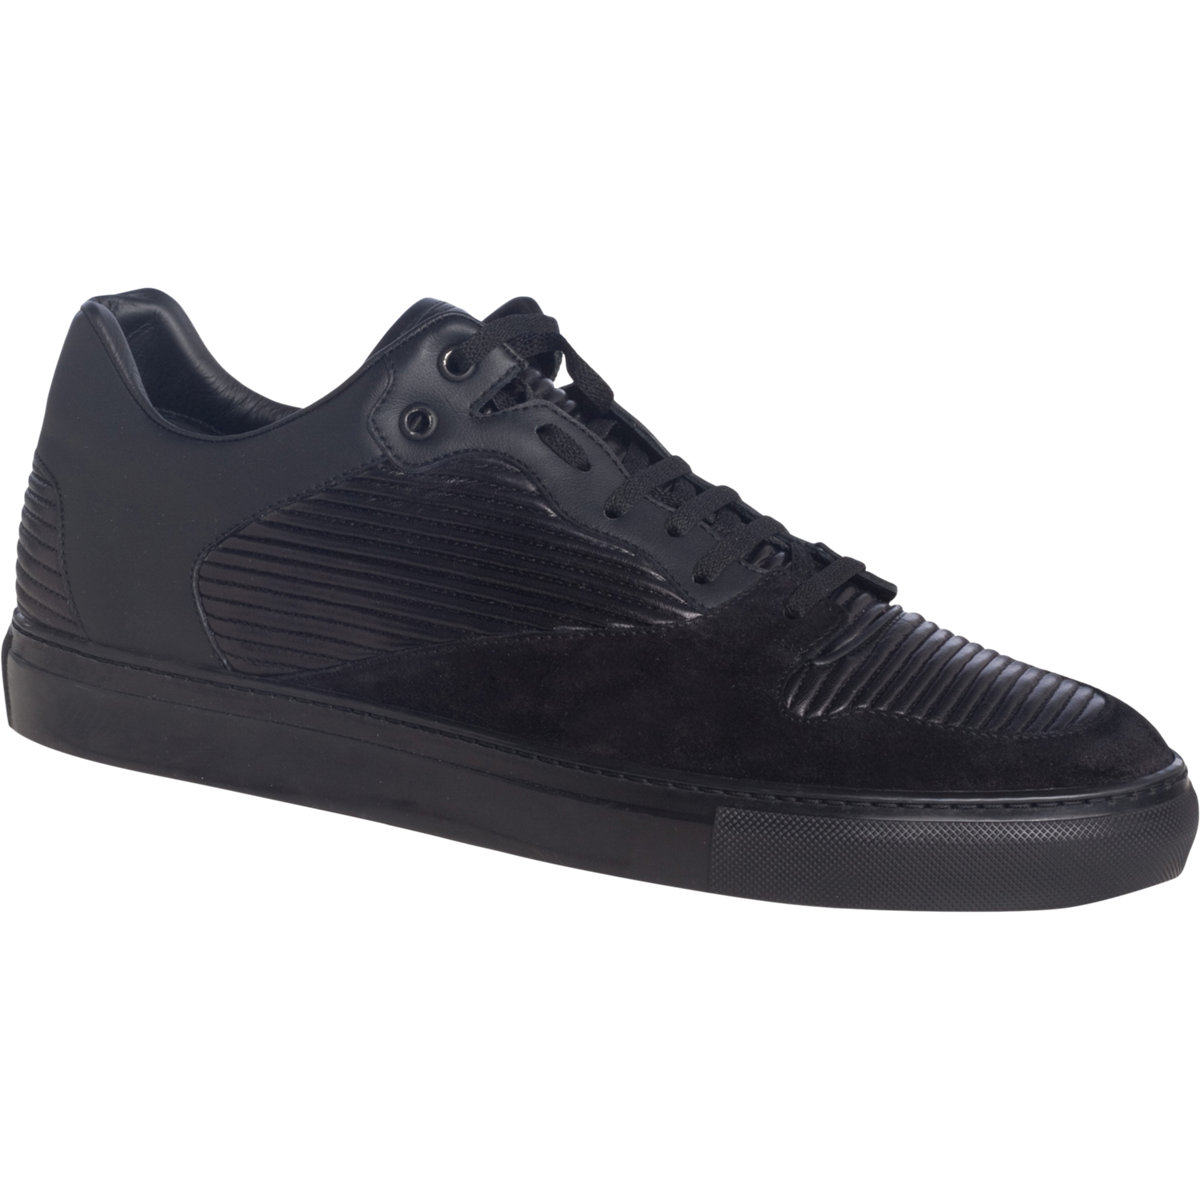 balenciaga pleated low top in black for men lyst. Black Bedroom Furniture Sets. Home Design Ideas